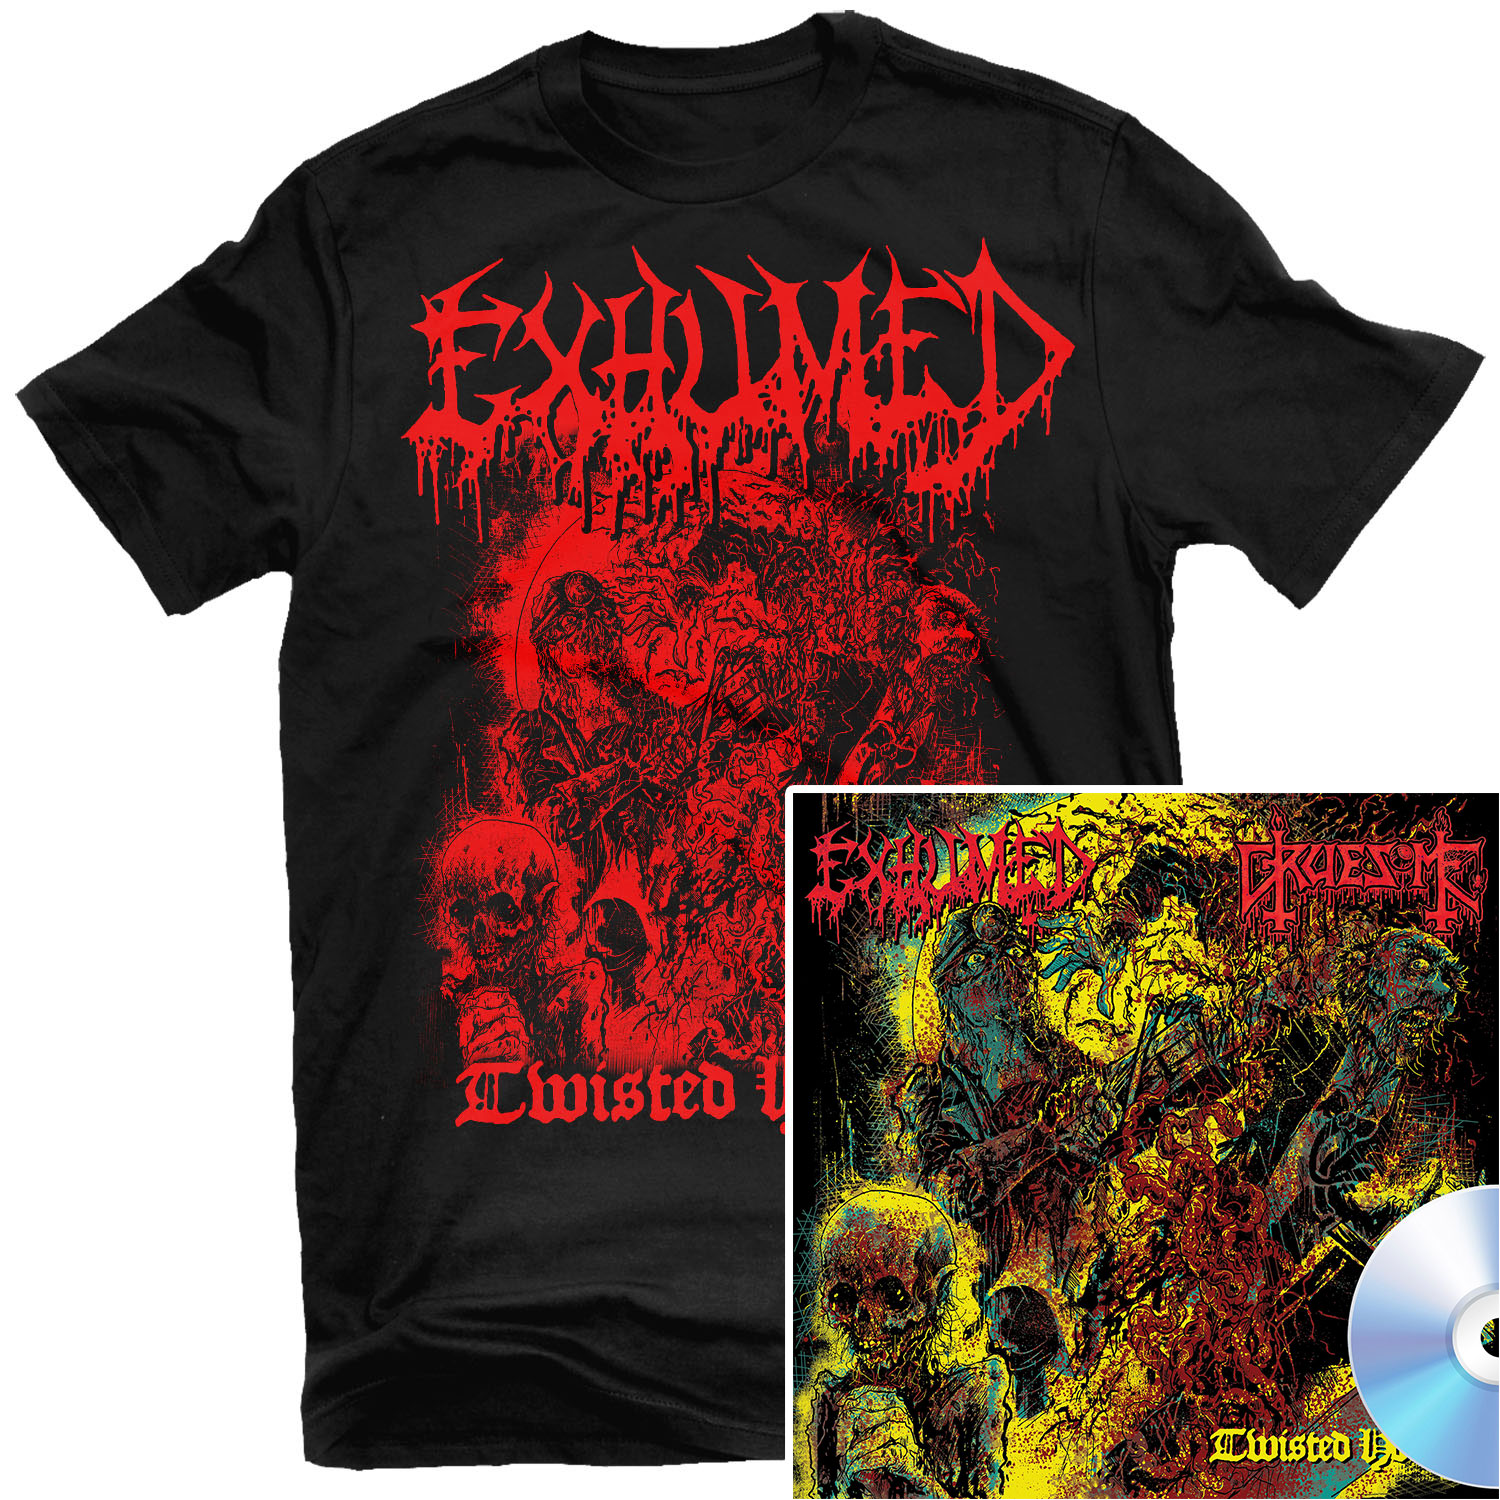 Exhumed - Twisted Horror T Shirt + CD Bundle